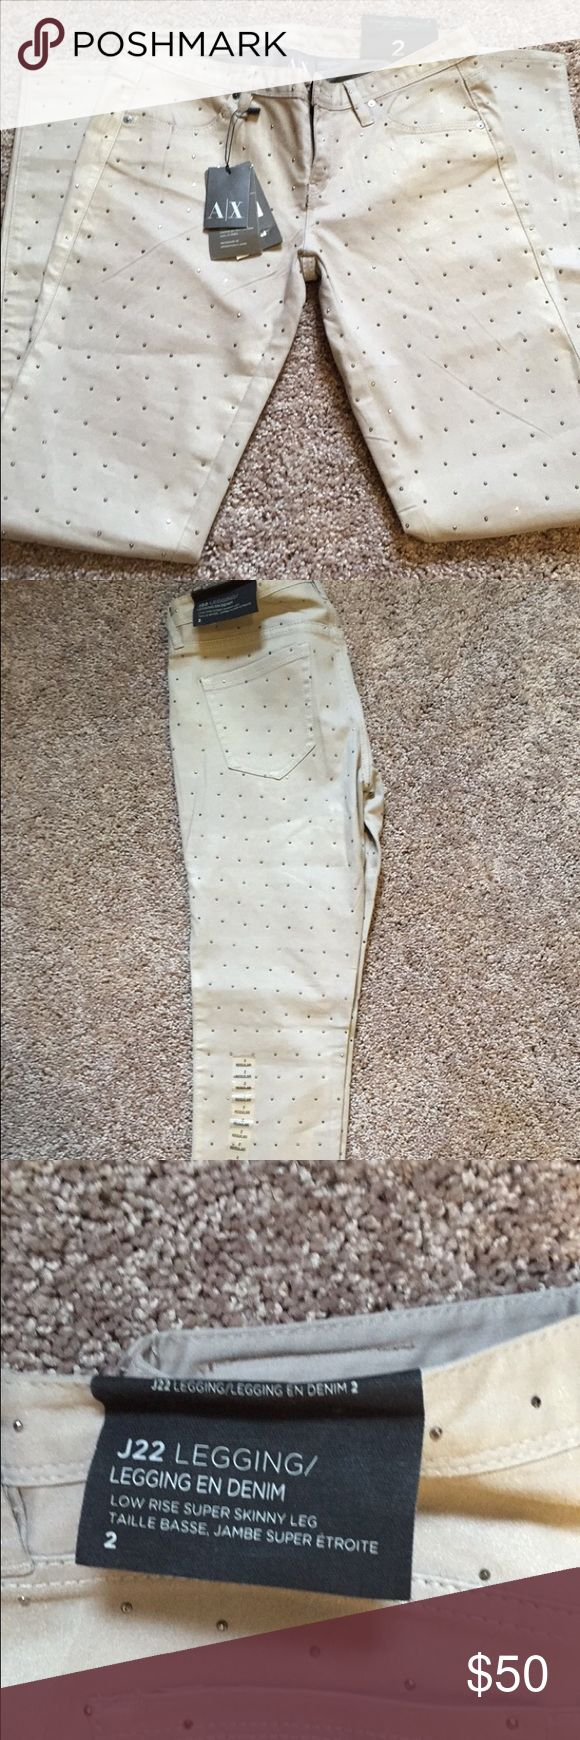 Armani Exchange legging studded denim NWT SZ 2 Armani Exchange legging studded denim in tan sz 2. Skinny fit super cute and brand new with tags Armani Exchange Jeans Skinny